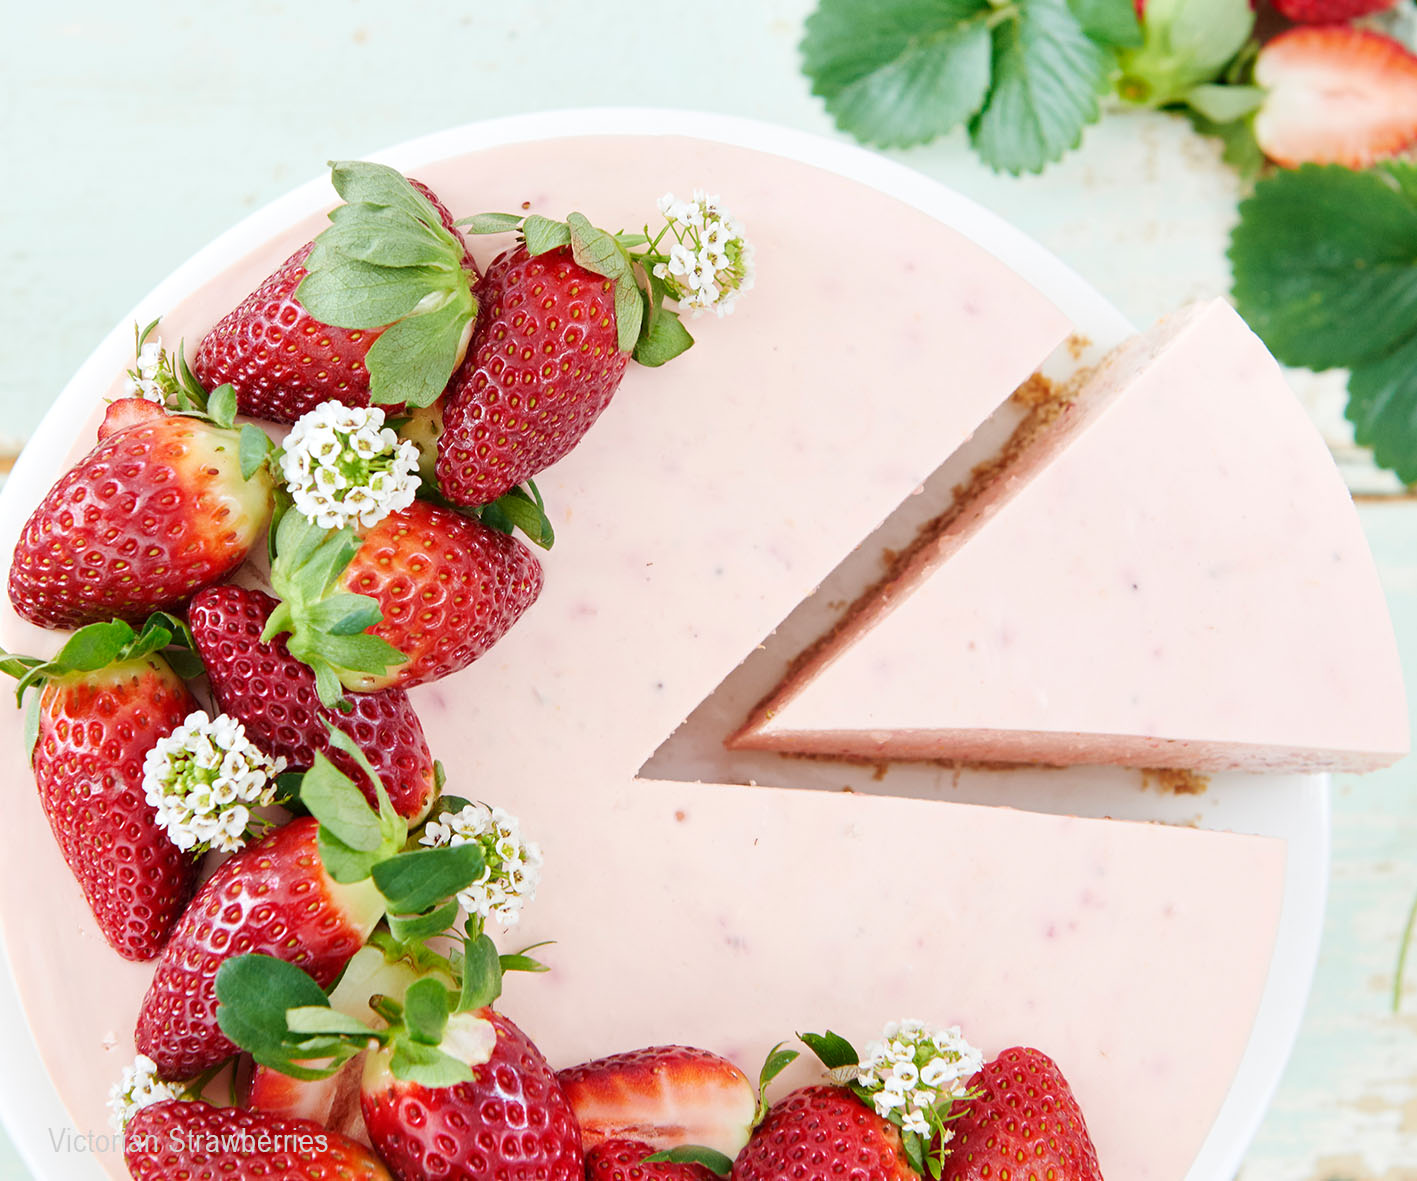 COOKINGPOSTJPEG - CLASSIC-STRAWBERRY-CHEESECAKE